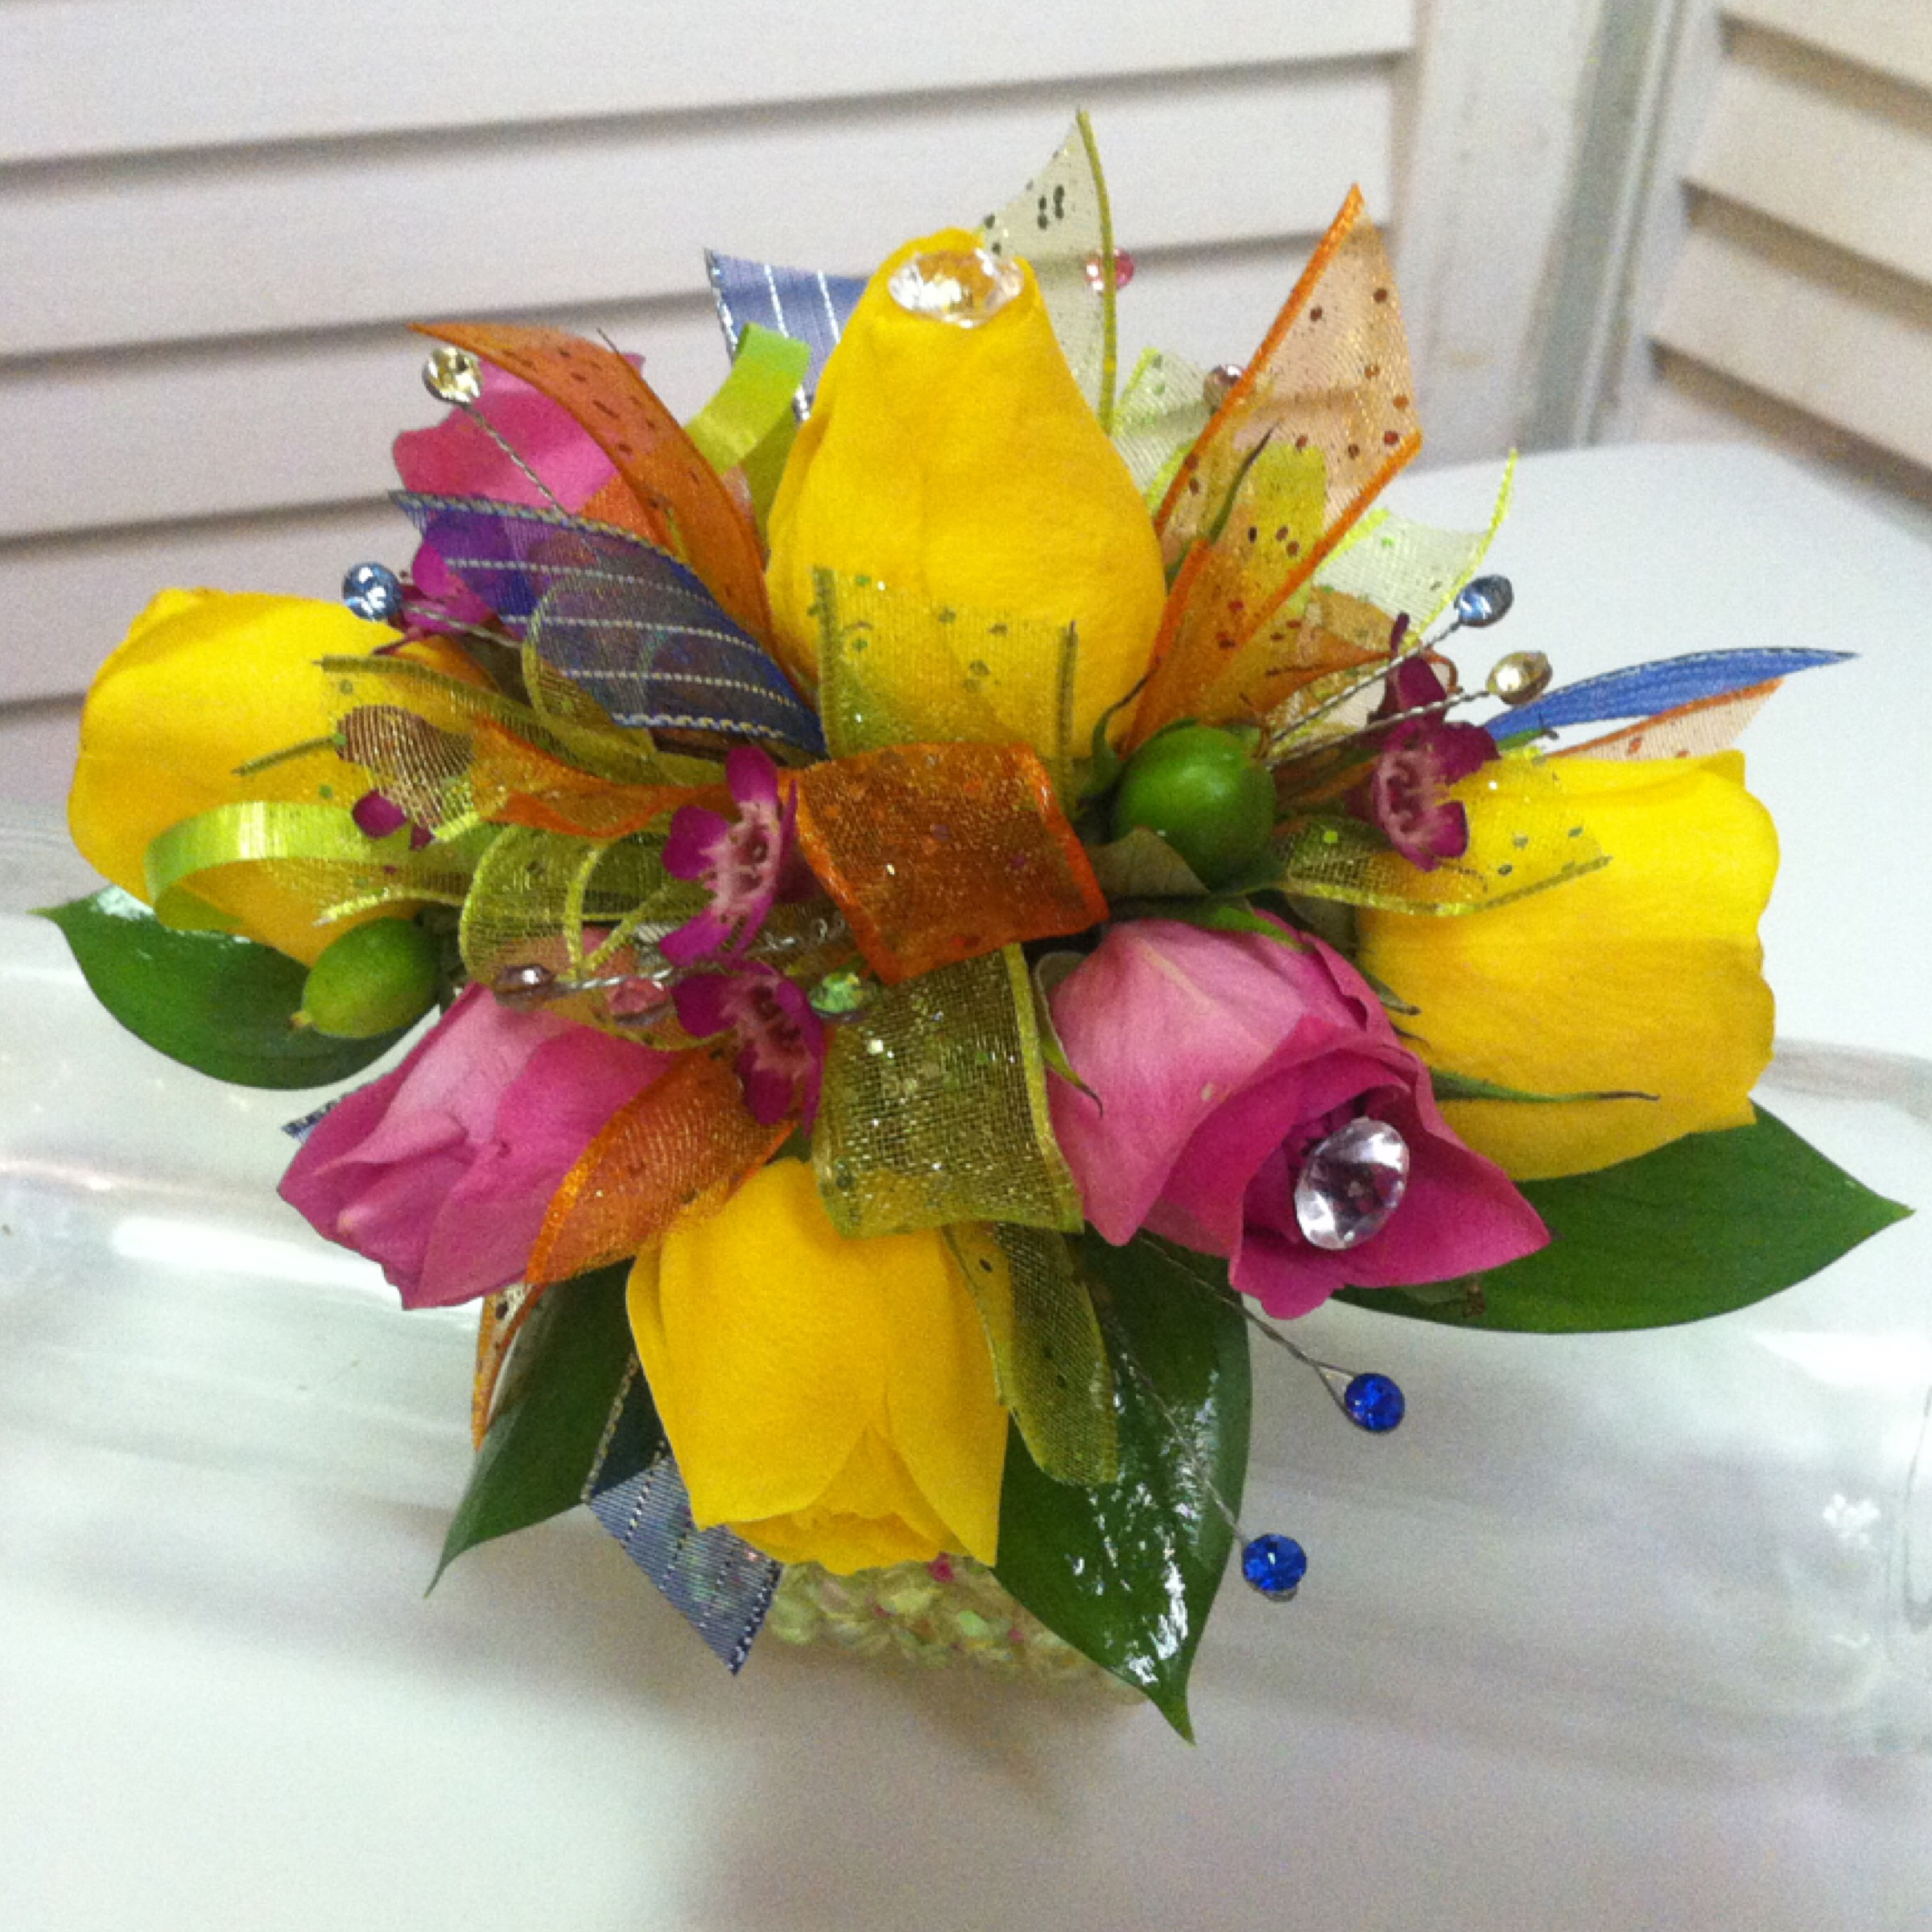 Plus Corsage (30) with Extra Flowers (5) and Upgraded Bow (2) $37